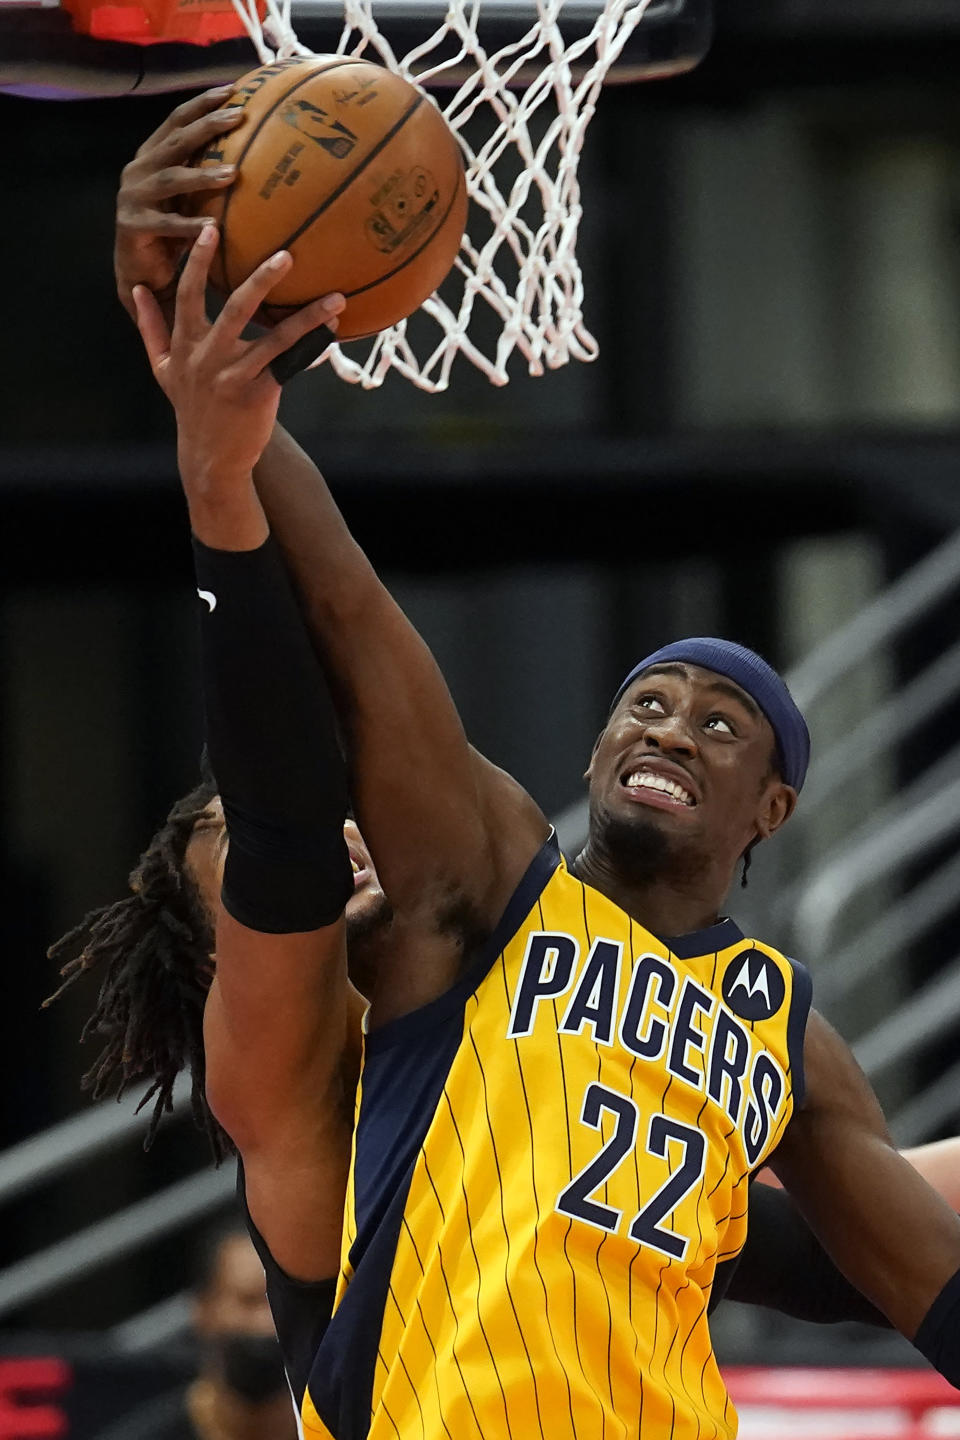 Indiana Pacers guard Caris LeVert (22) grabs a rebound away from Toronto Raptors forward Freddie Gillespie (55) during the first half of an NBA basketball game Sunday, May 16, 2021, in Tampa, Fla. (AP Photo/Chris O'Meara)